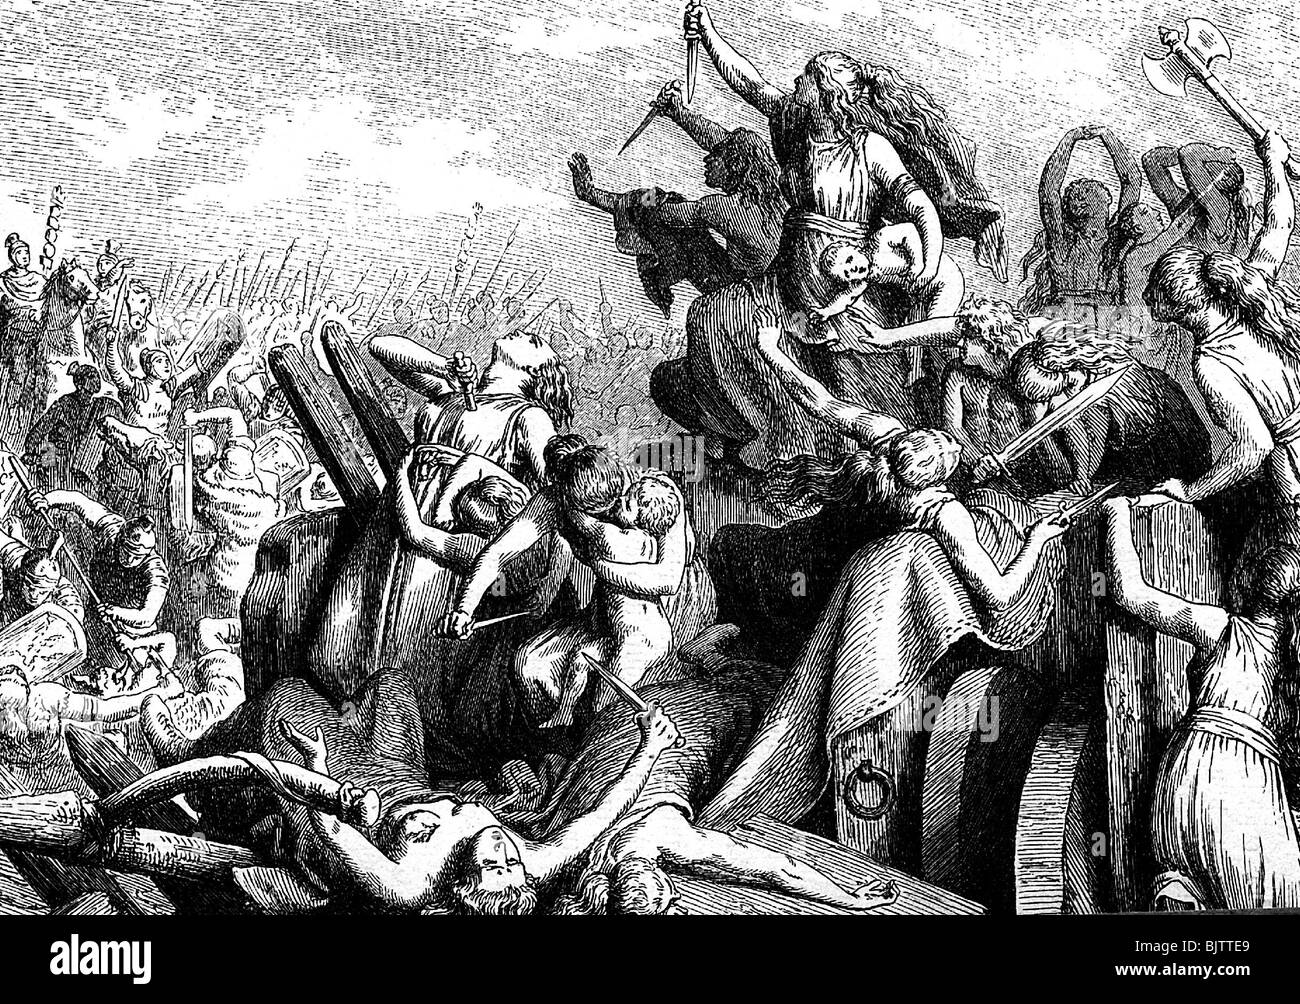 events, Cimbrian War 113 - 101 BC, Battle of Vercellae, 30.7.101 BC, Cimbrian women defending the carriages, wood - Stock Image